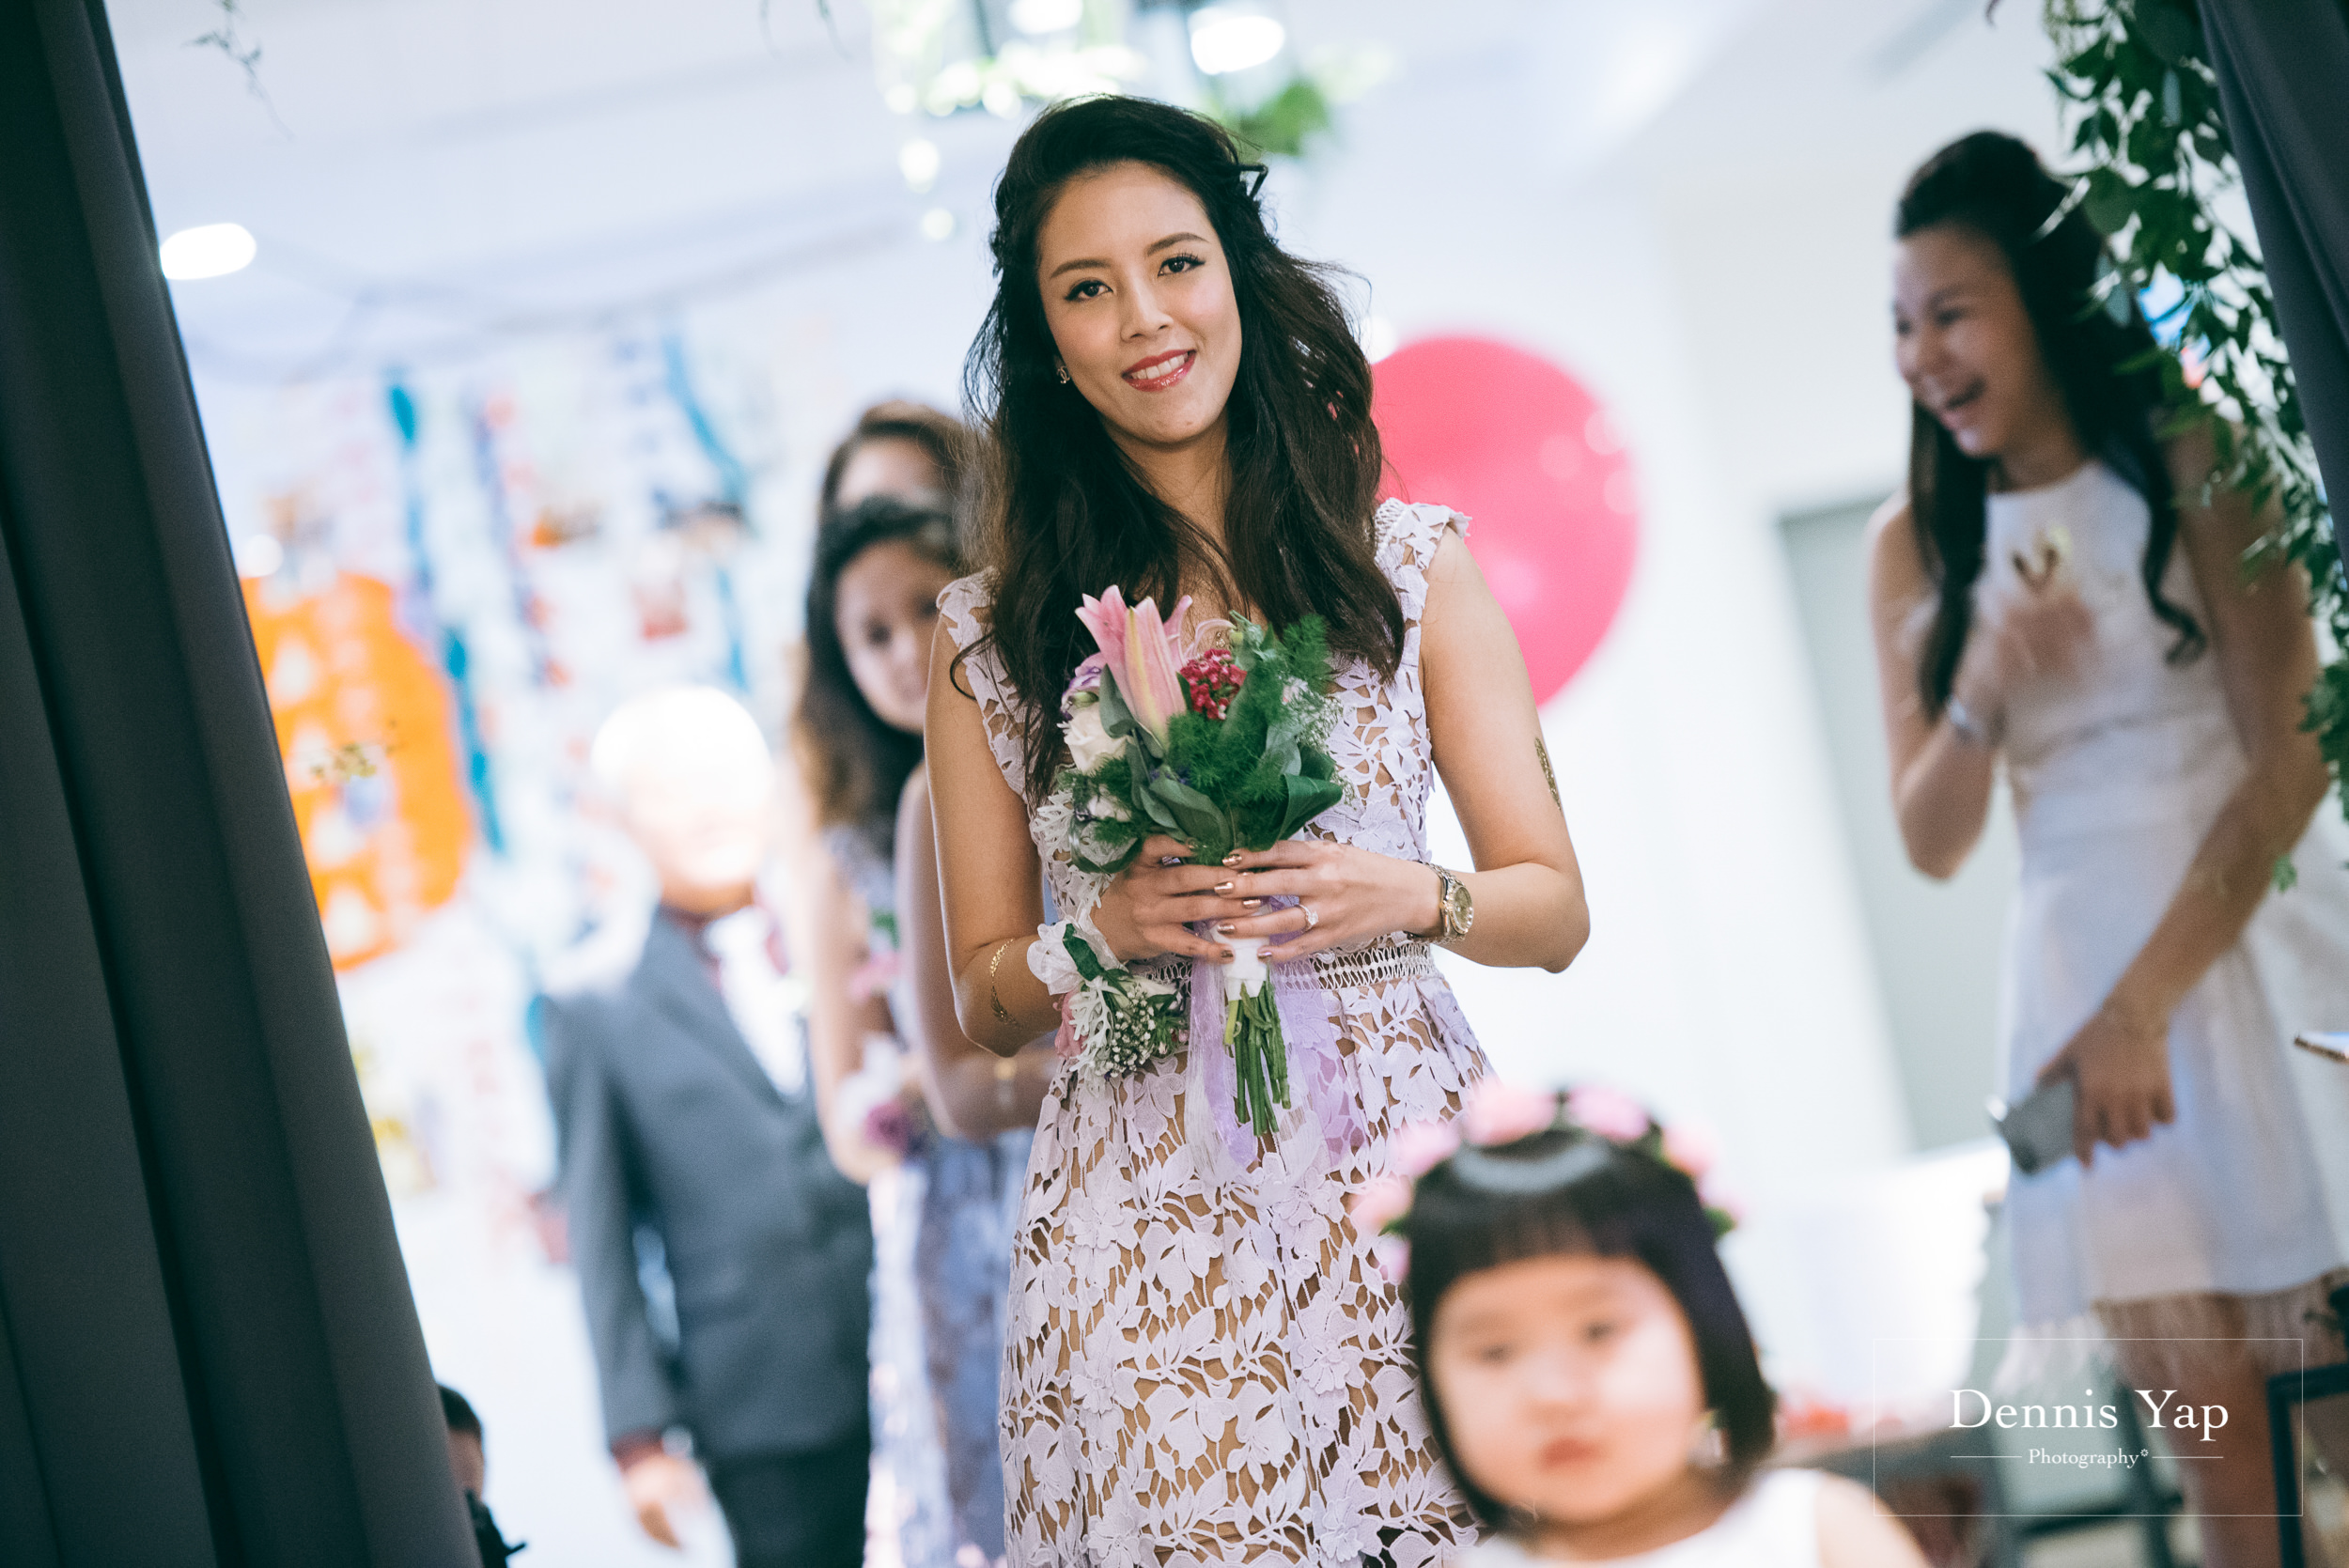 ser siang sze liang rom registration of marriage KL journal hotel dennis yap photography-8.jpg